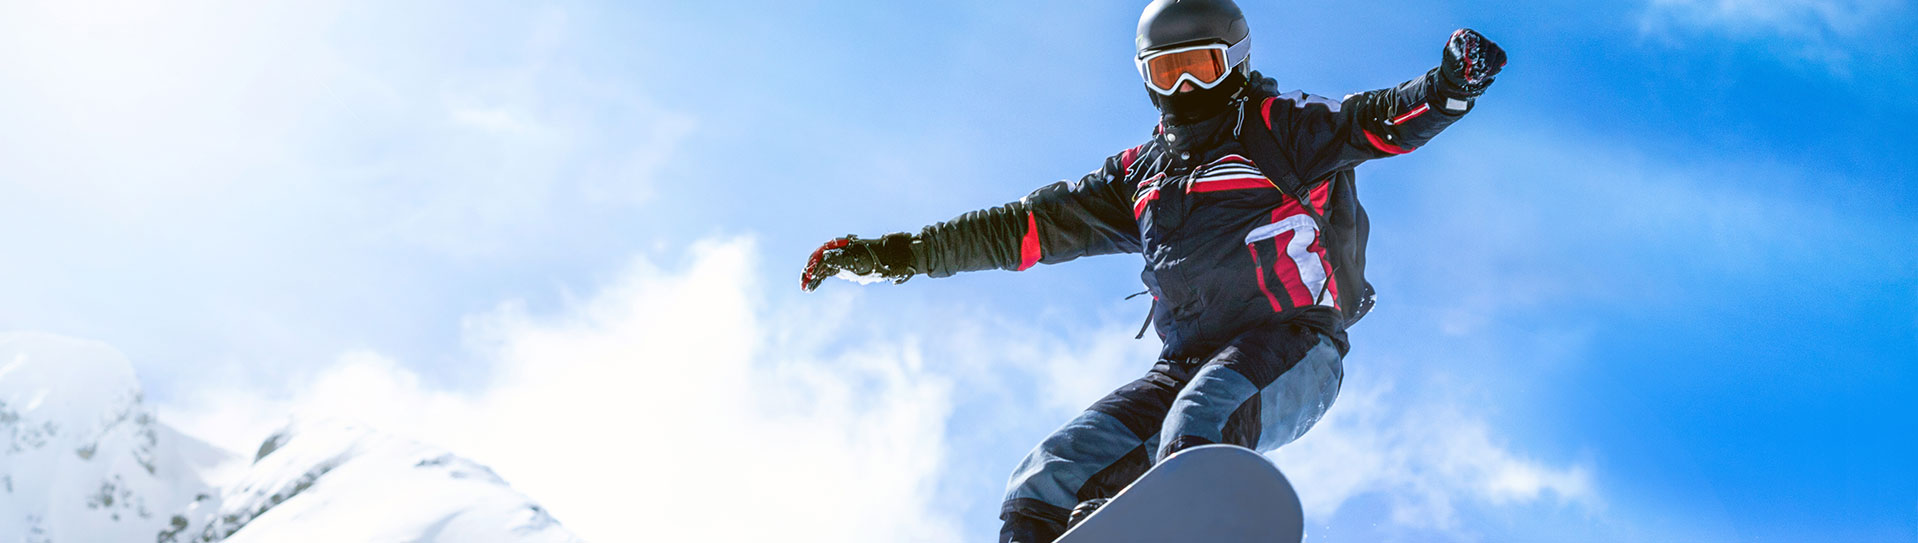 image of a snowboarder